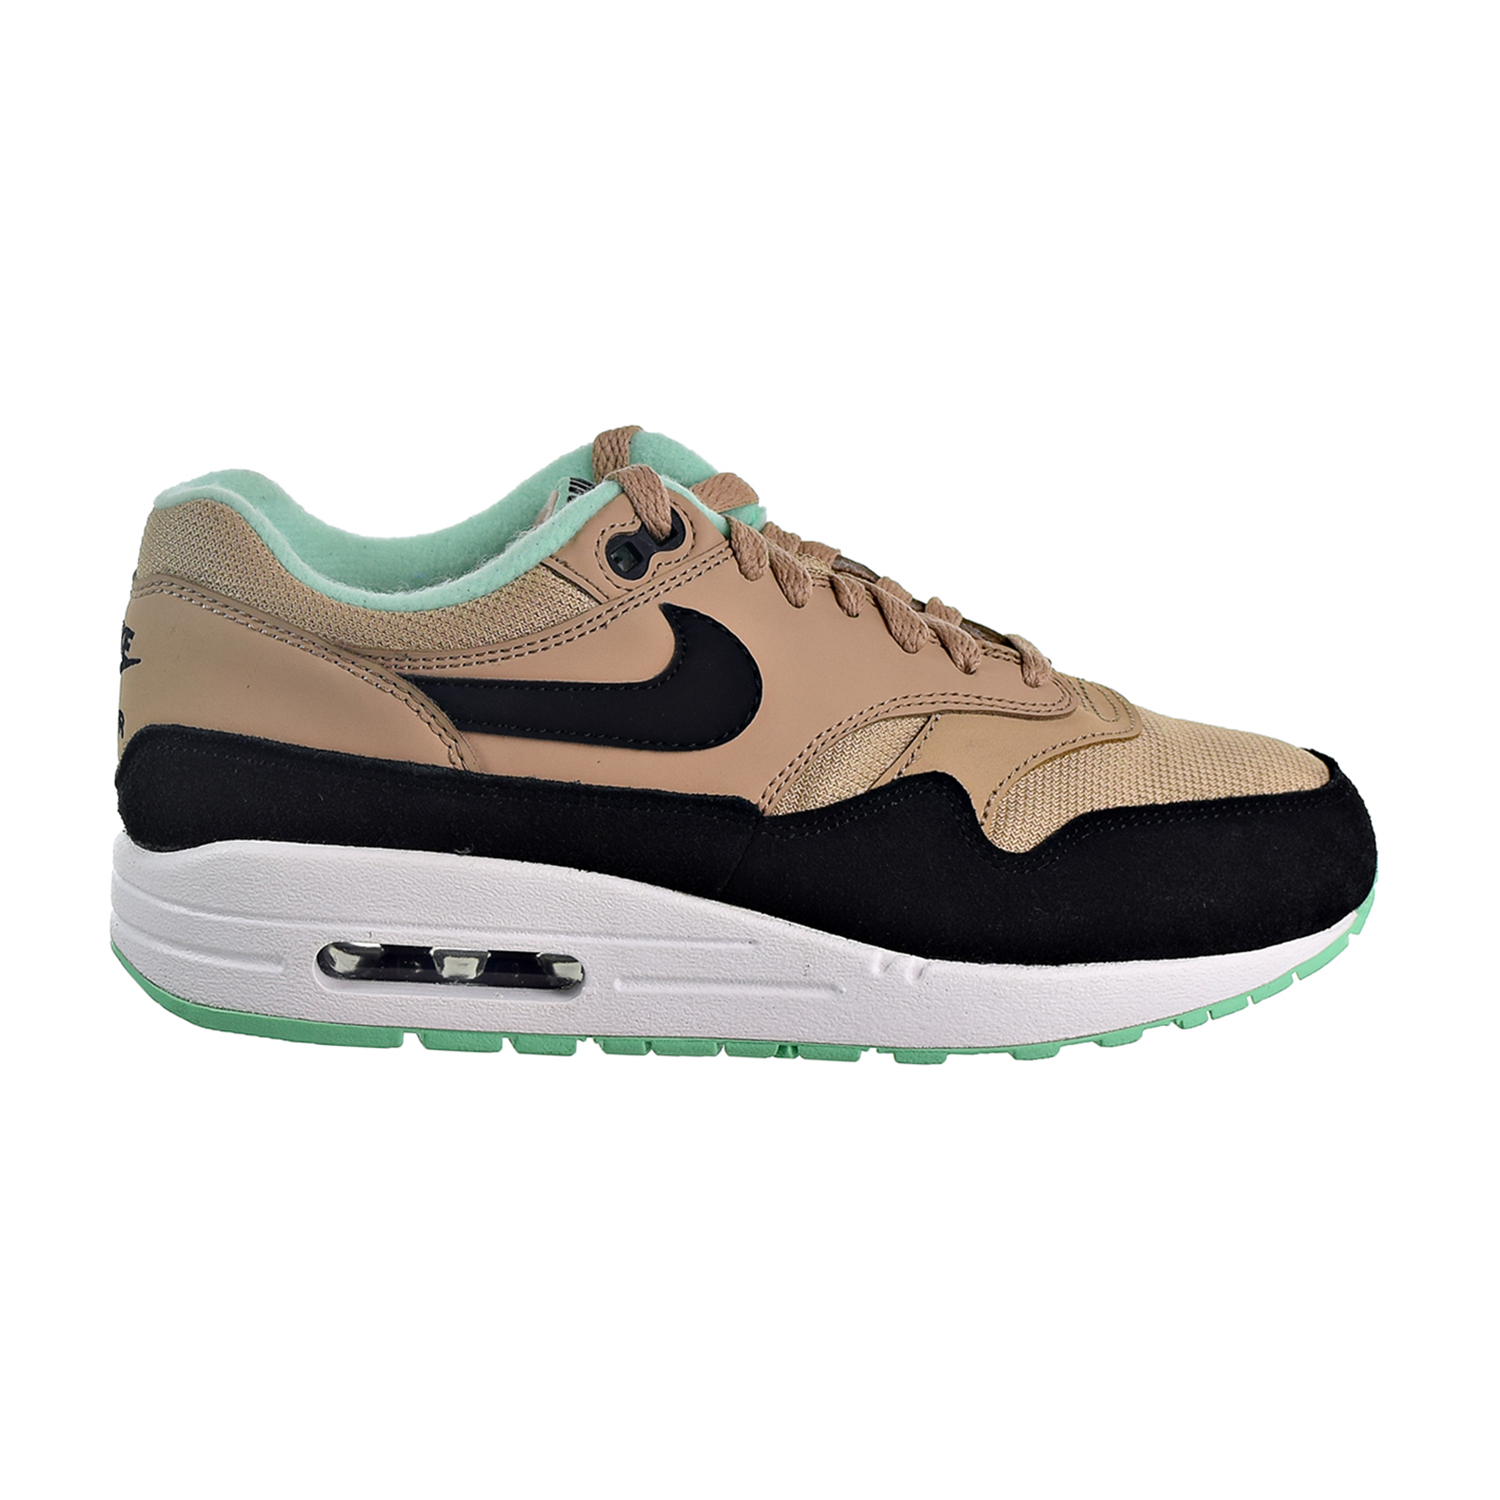 Details about Nike Air Max 1 Women's Shoes DesertBlackGreen GlowWhite 319986 206